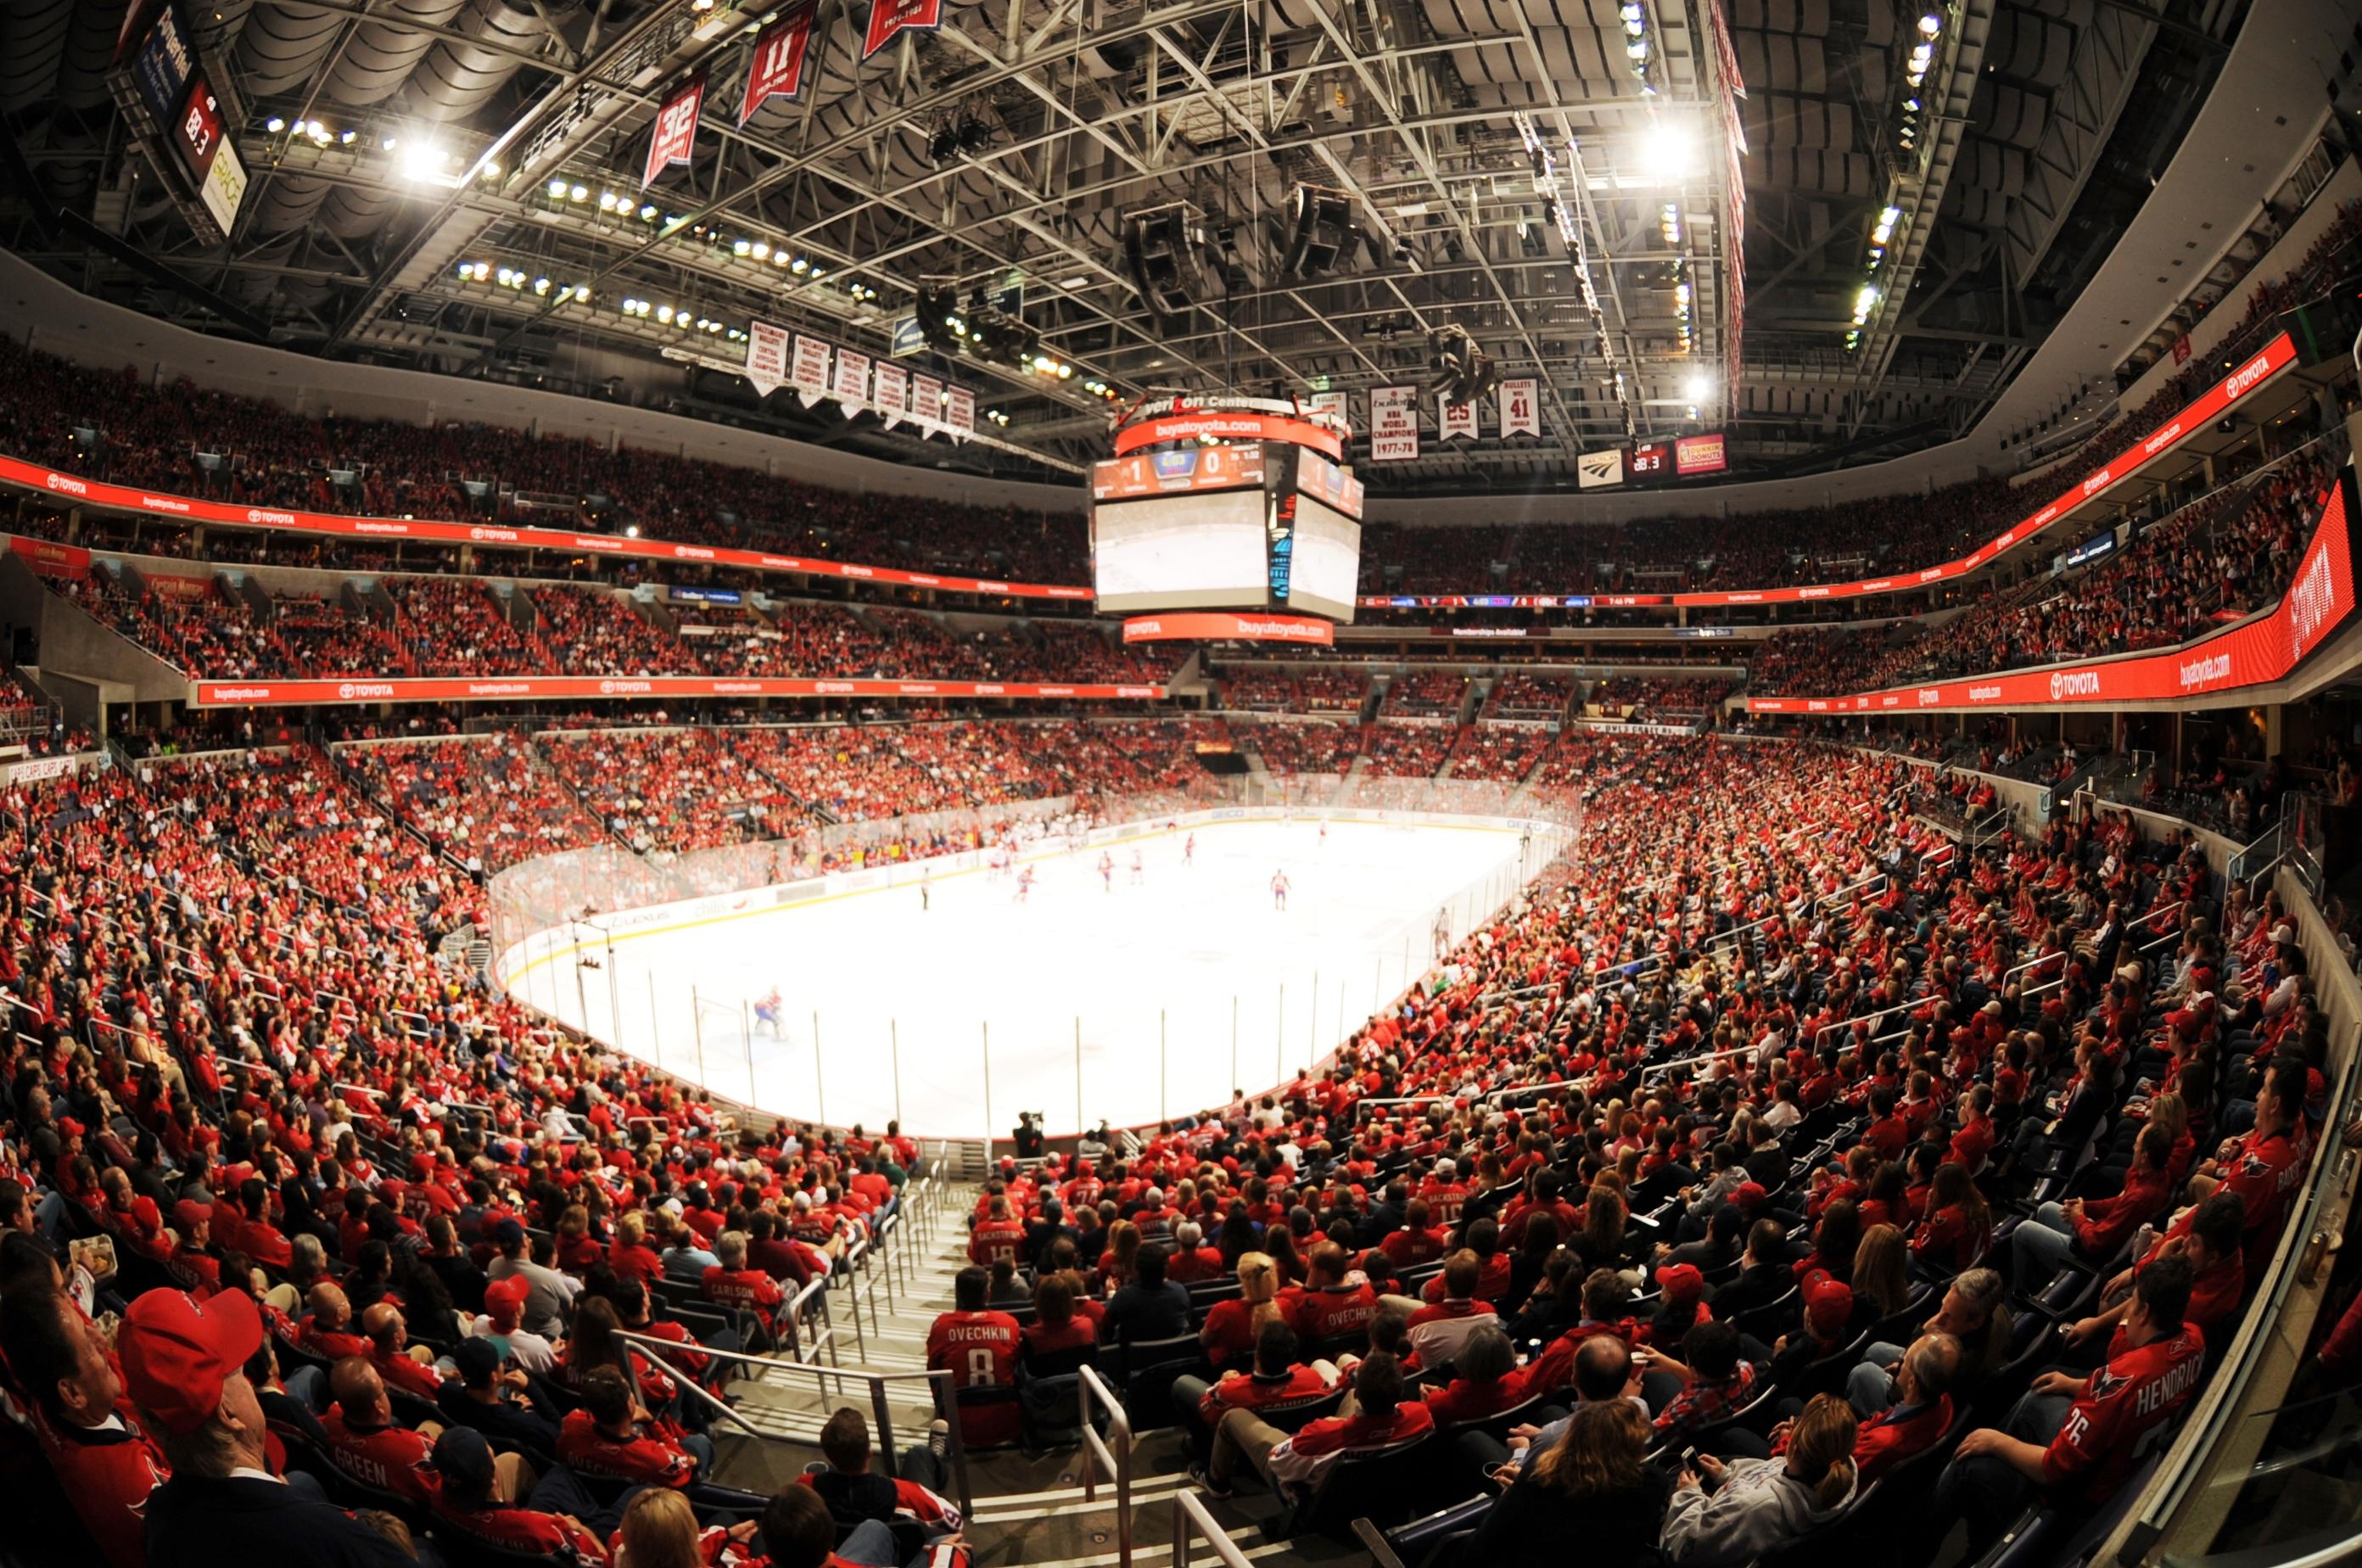 To determine the cities where the game is always on regardless of season, WalletHub compared over 420 cities across more than 50 key metrics, ranging from performance level of the city's team(s) to average ticket price per game. D.C. was ranked as the 8th best city for sports fans.{ } (Image: Courtesy Capital One Arena)